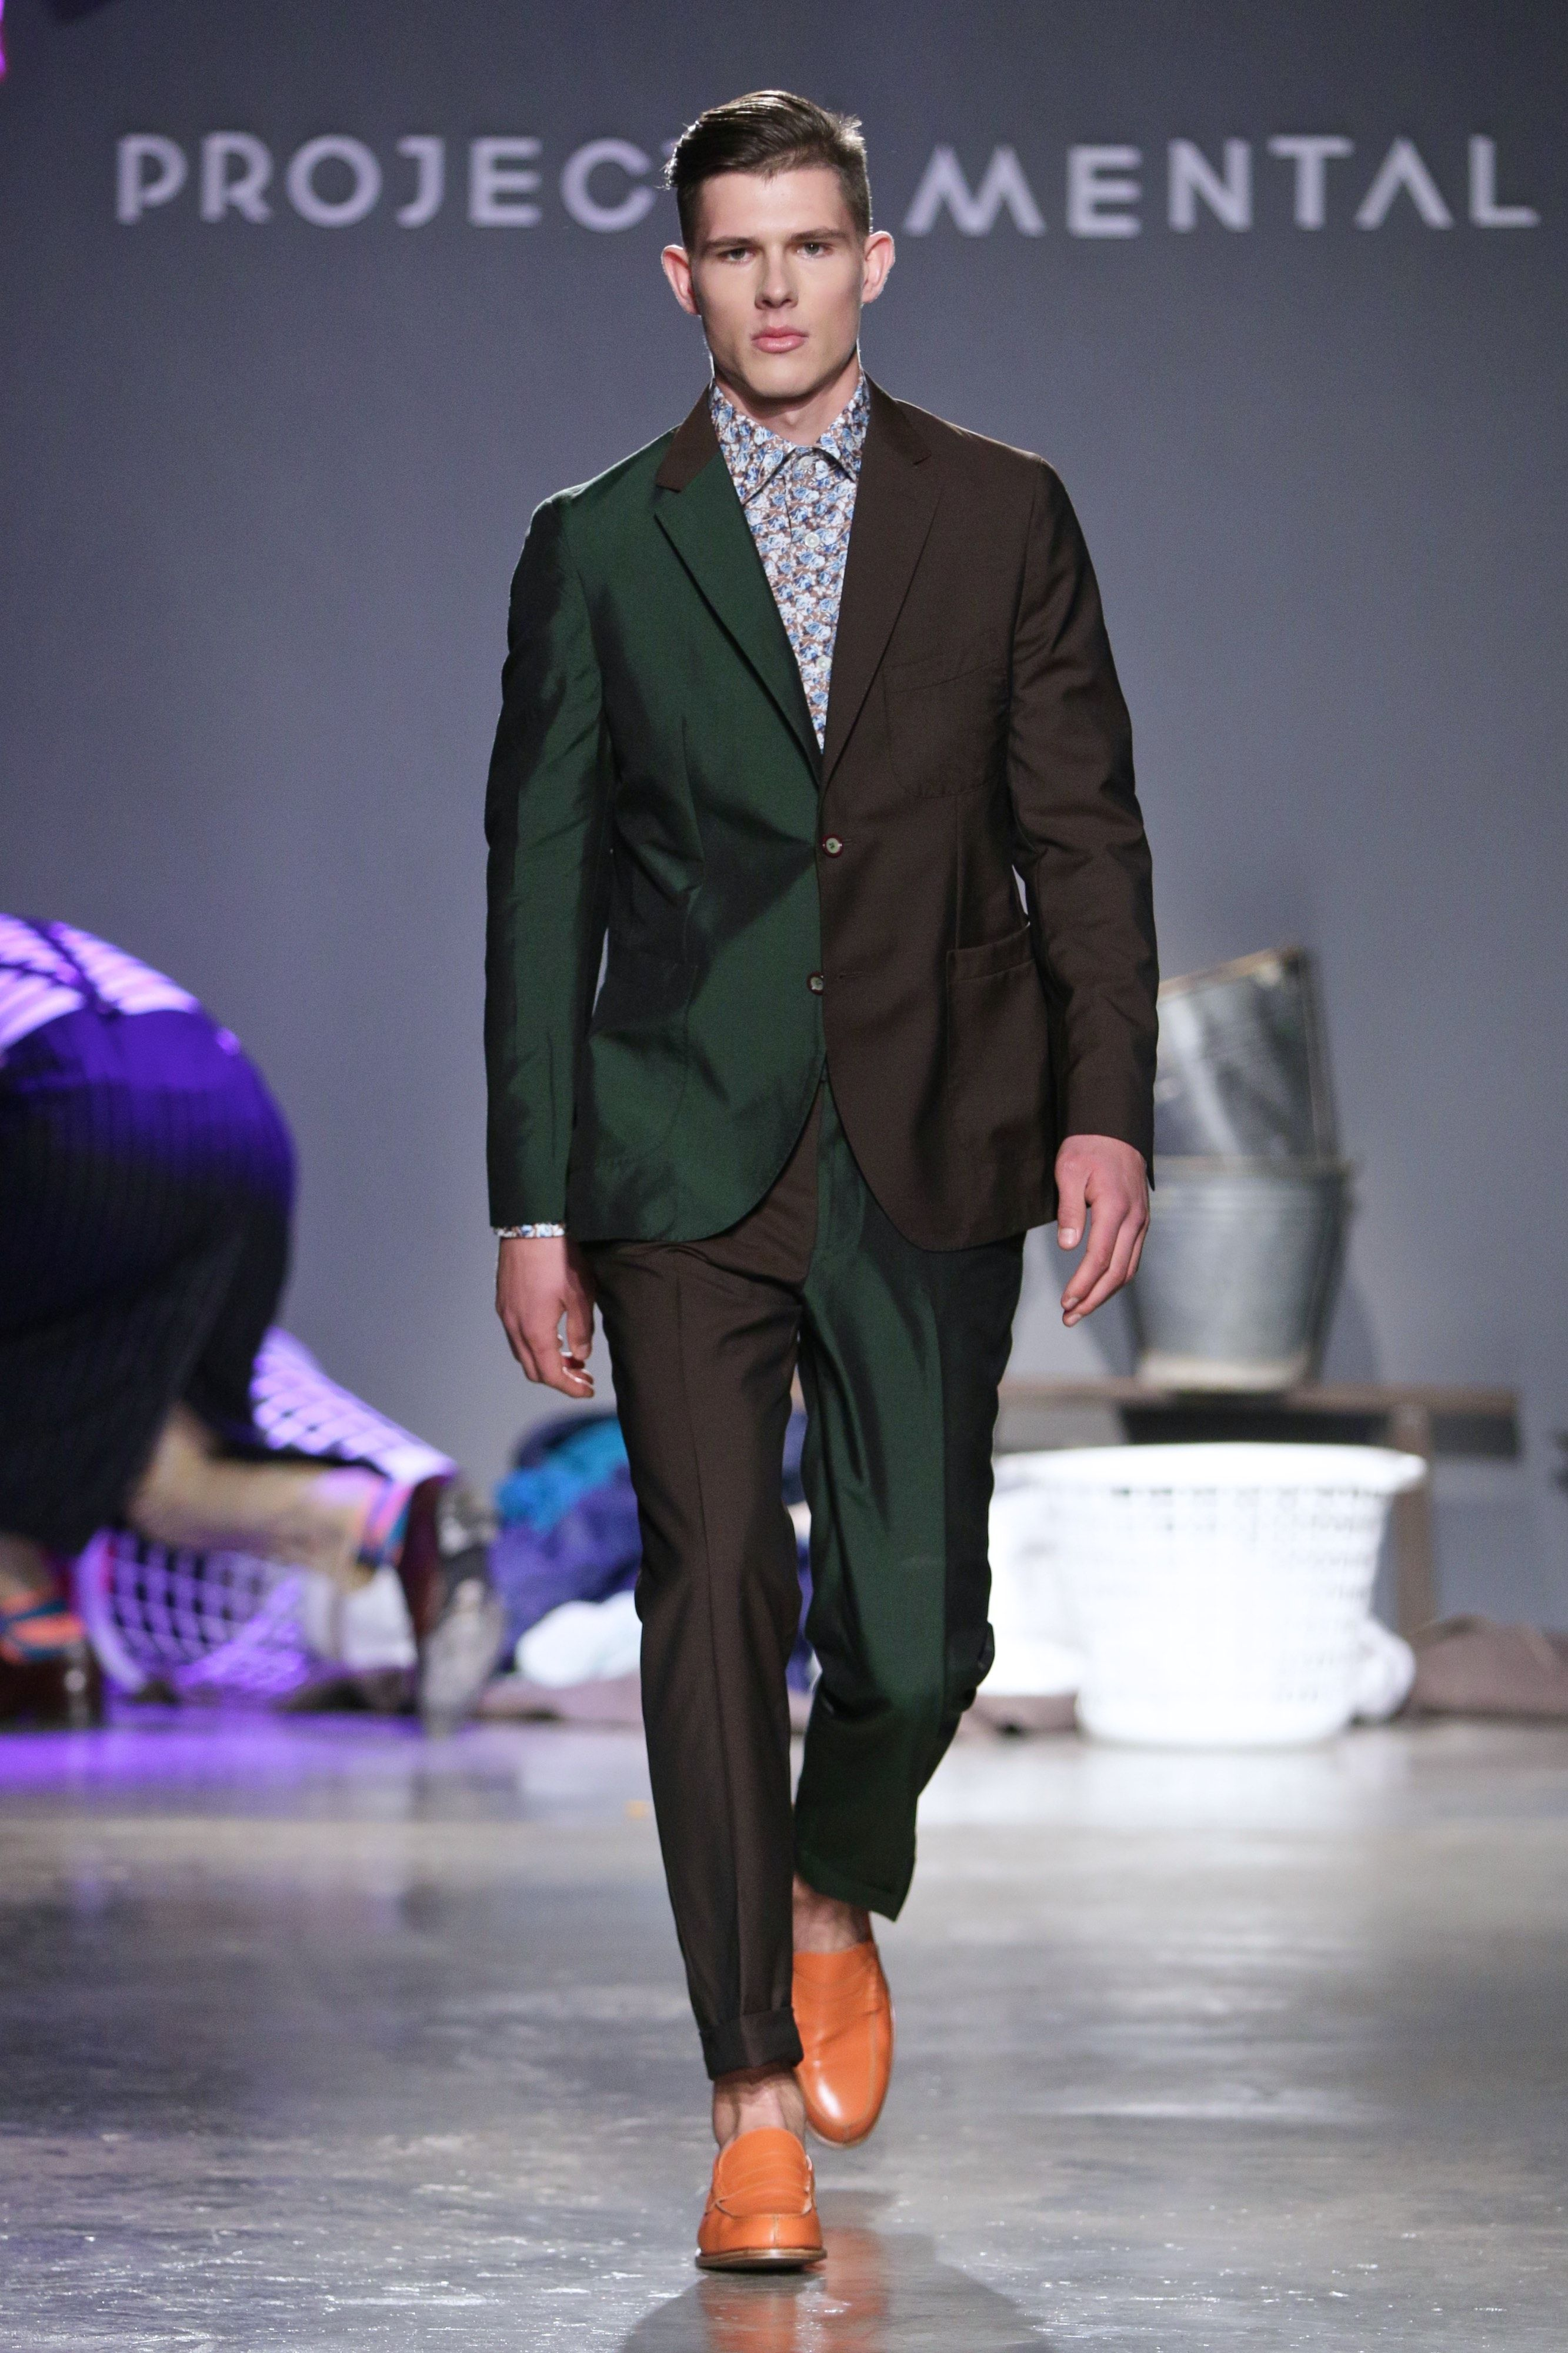 Projecto Mental South Africa Menswear Week - #Trends #Tendencias #Moda Hombre - SDR Photo